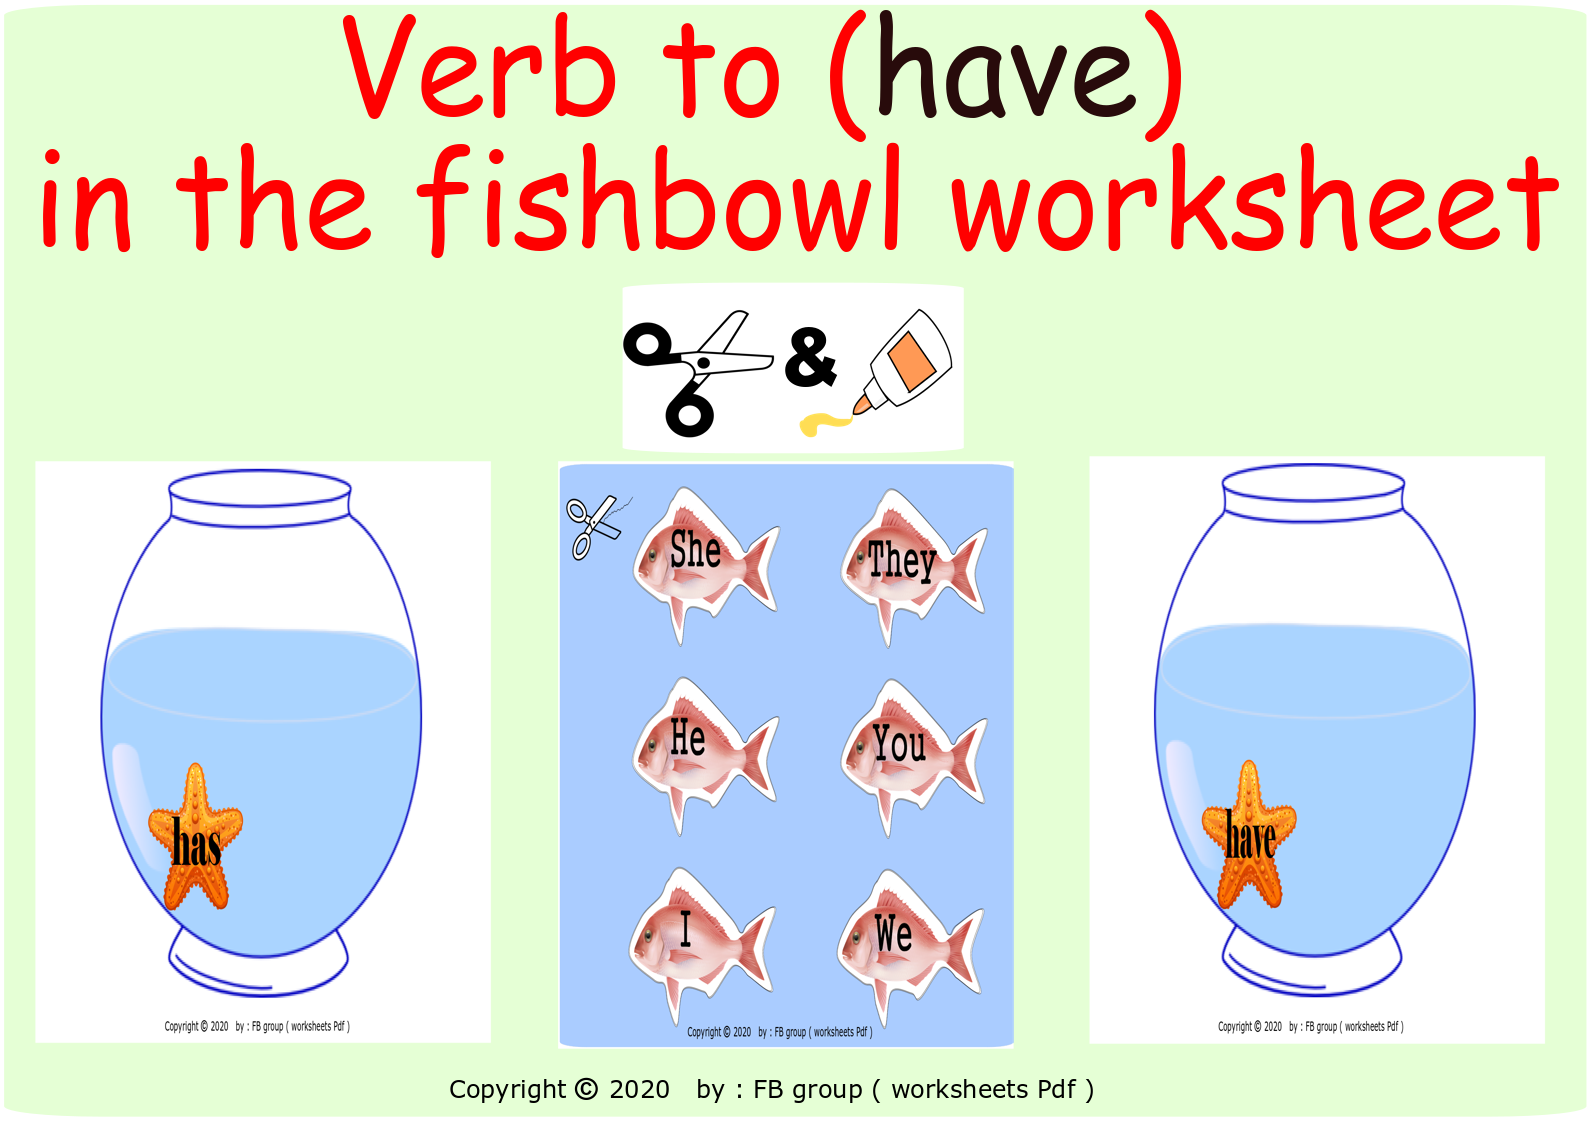 Download Verb To Have In The Fishbowl Worksheet File